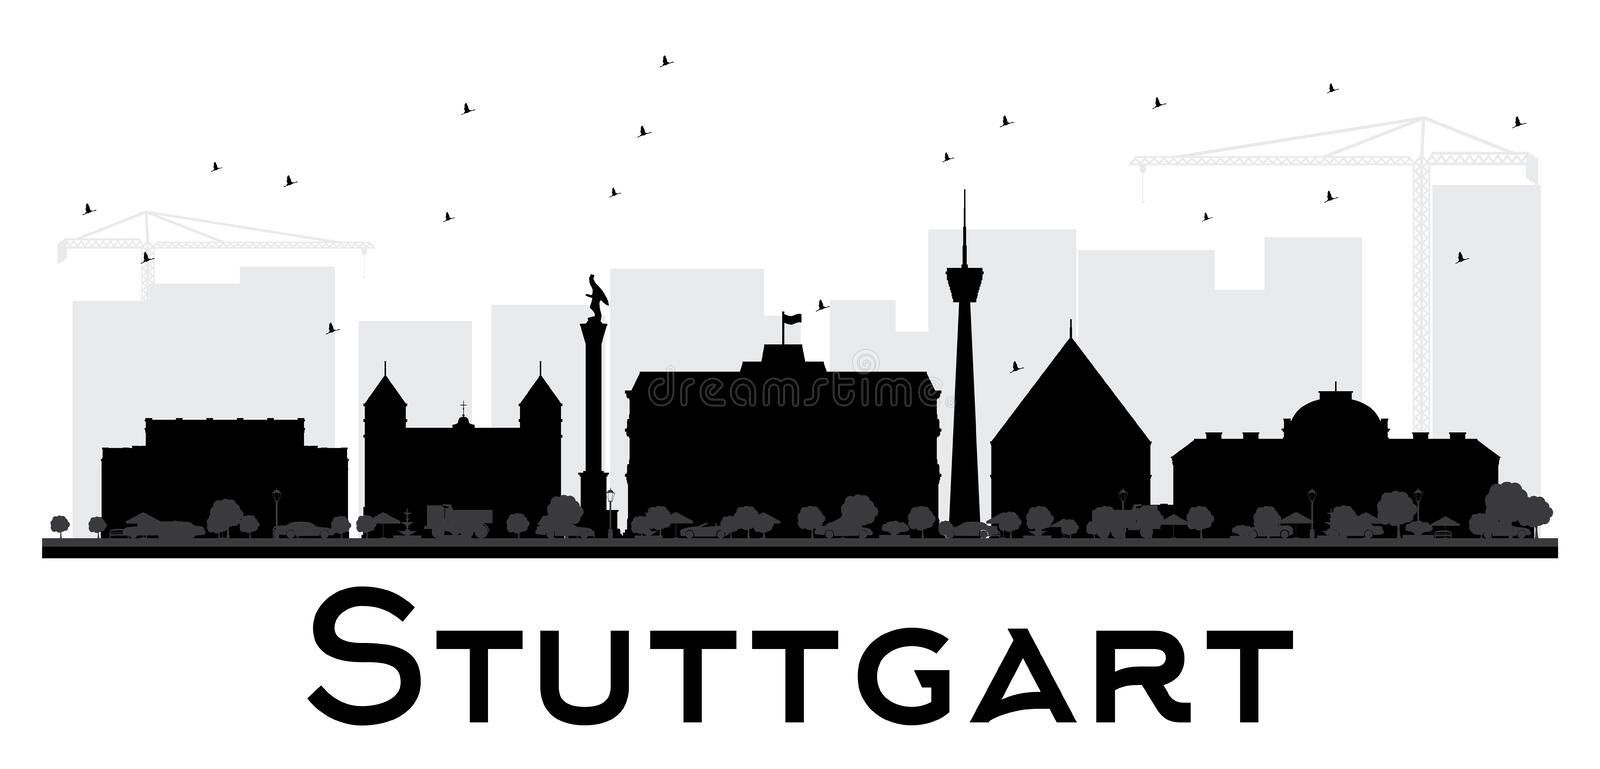 stuttgart stadtskyline schwarzweiss schattenbild vektor abbildung illustration von panorama. Black Bedroom Furniture Sets. Home Design Ideas